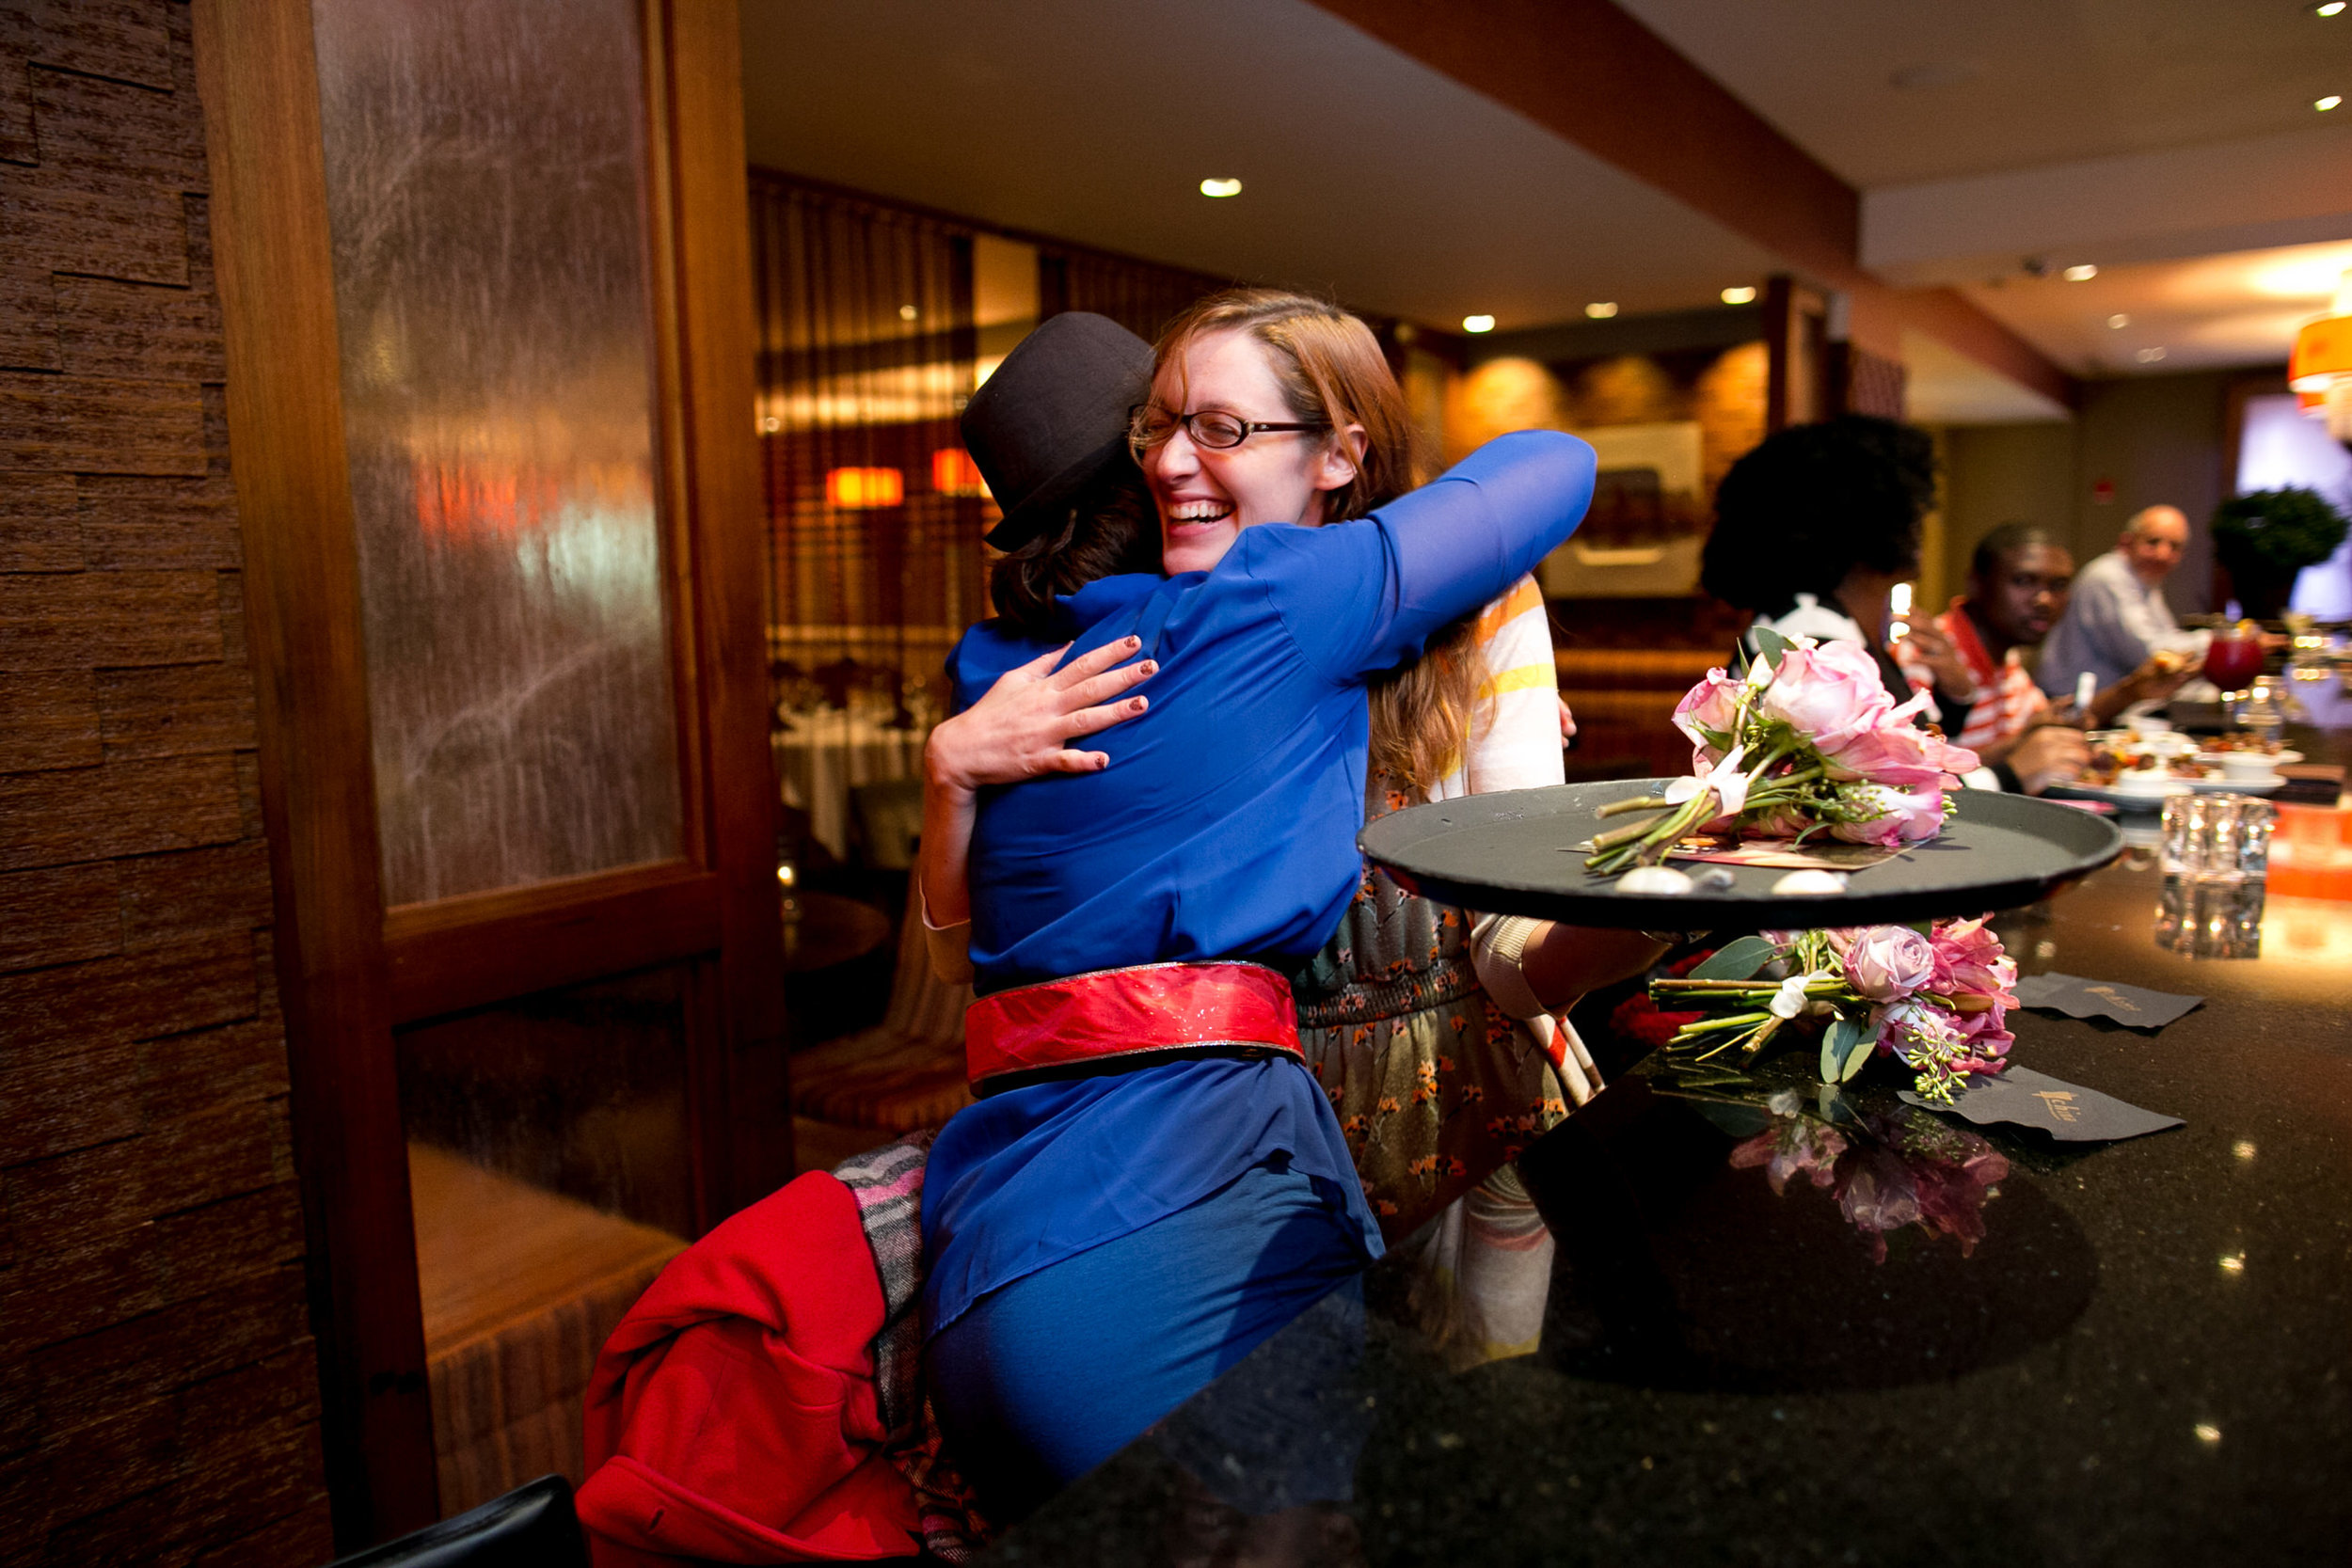 12 Philadelphia Event Planner Surprise Proposal Friends and Family.jpg